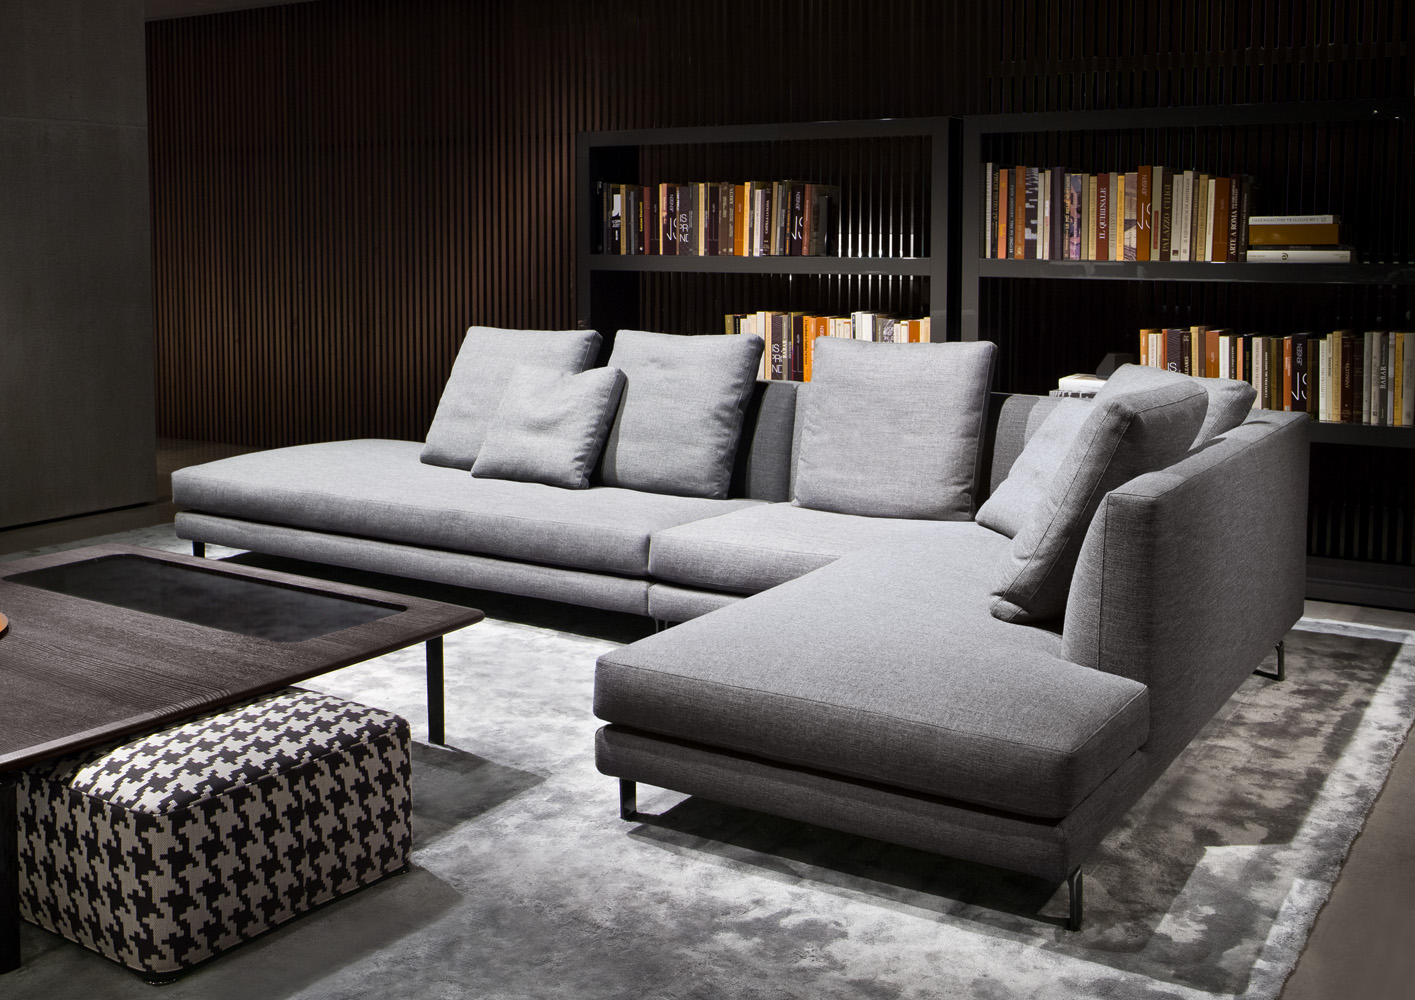 Sofas Modernos Italianos 20 Modish Minotti Sofas And Seating Systems